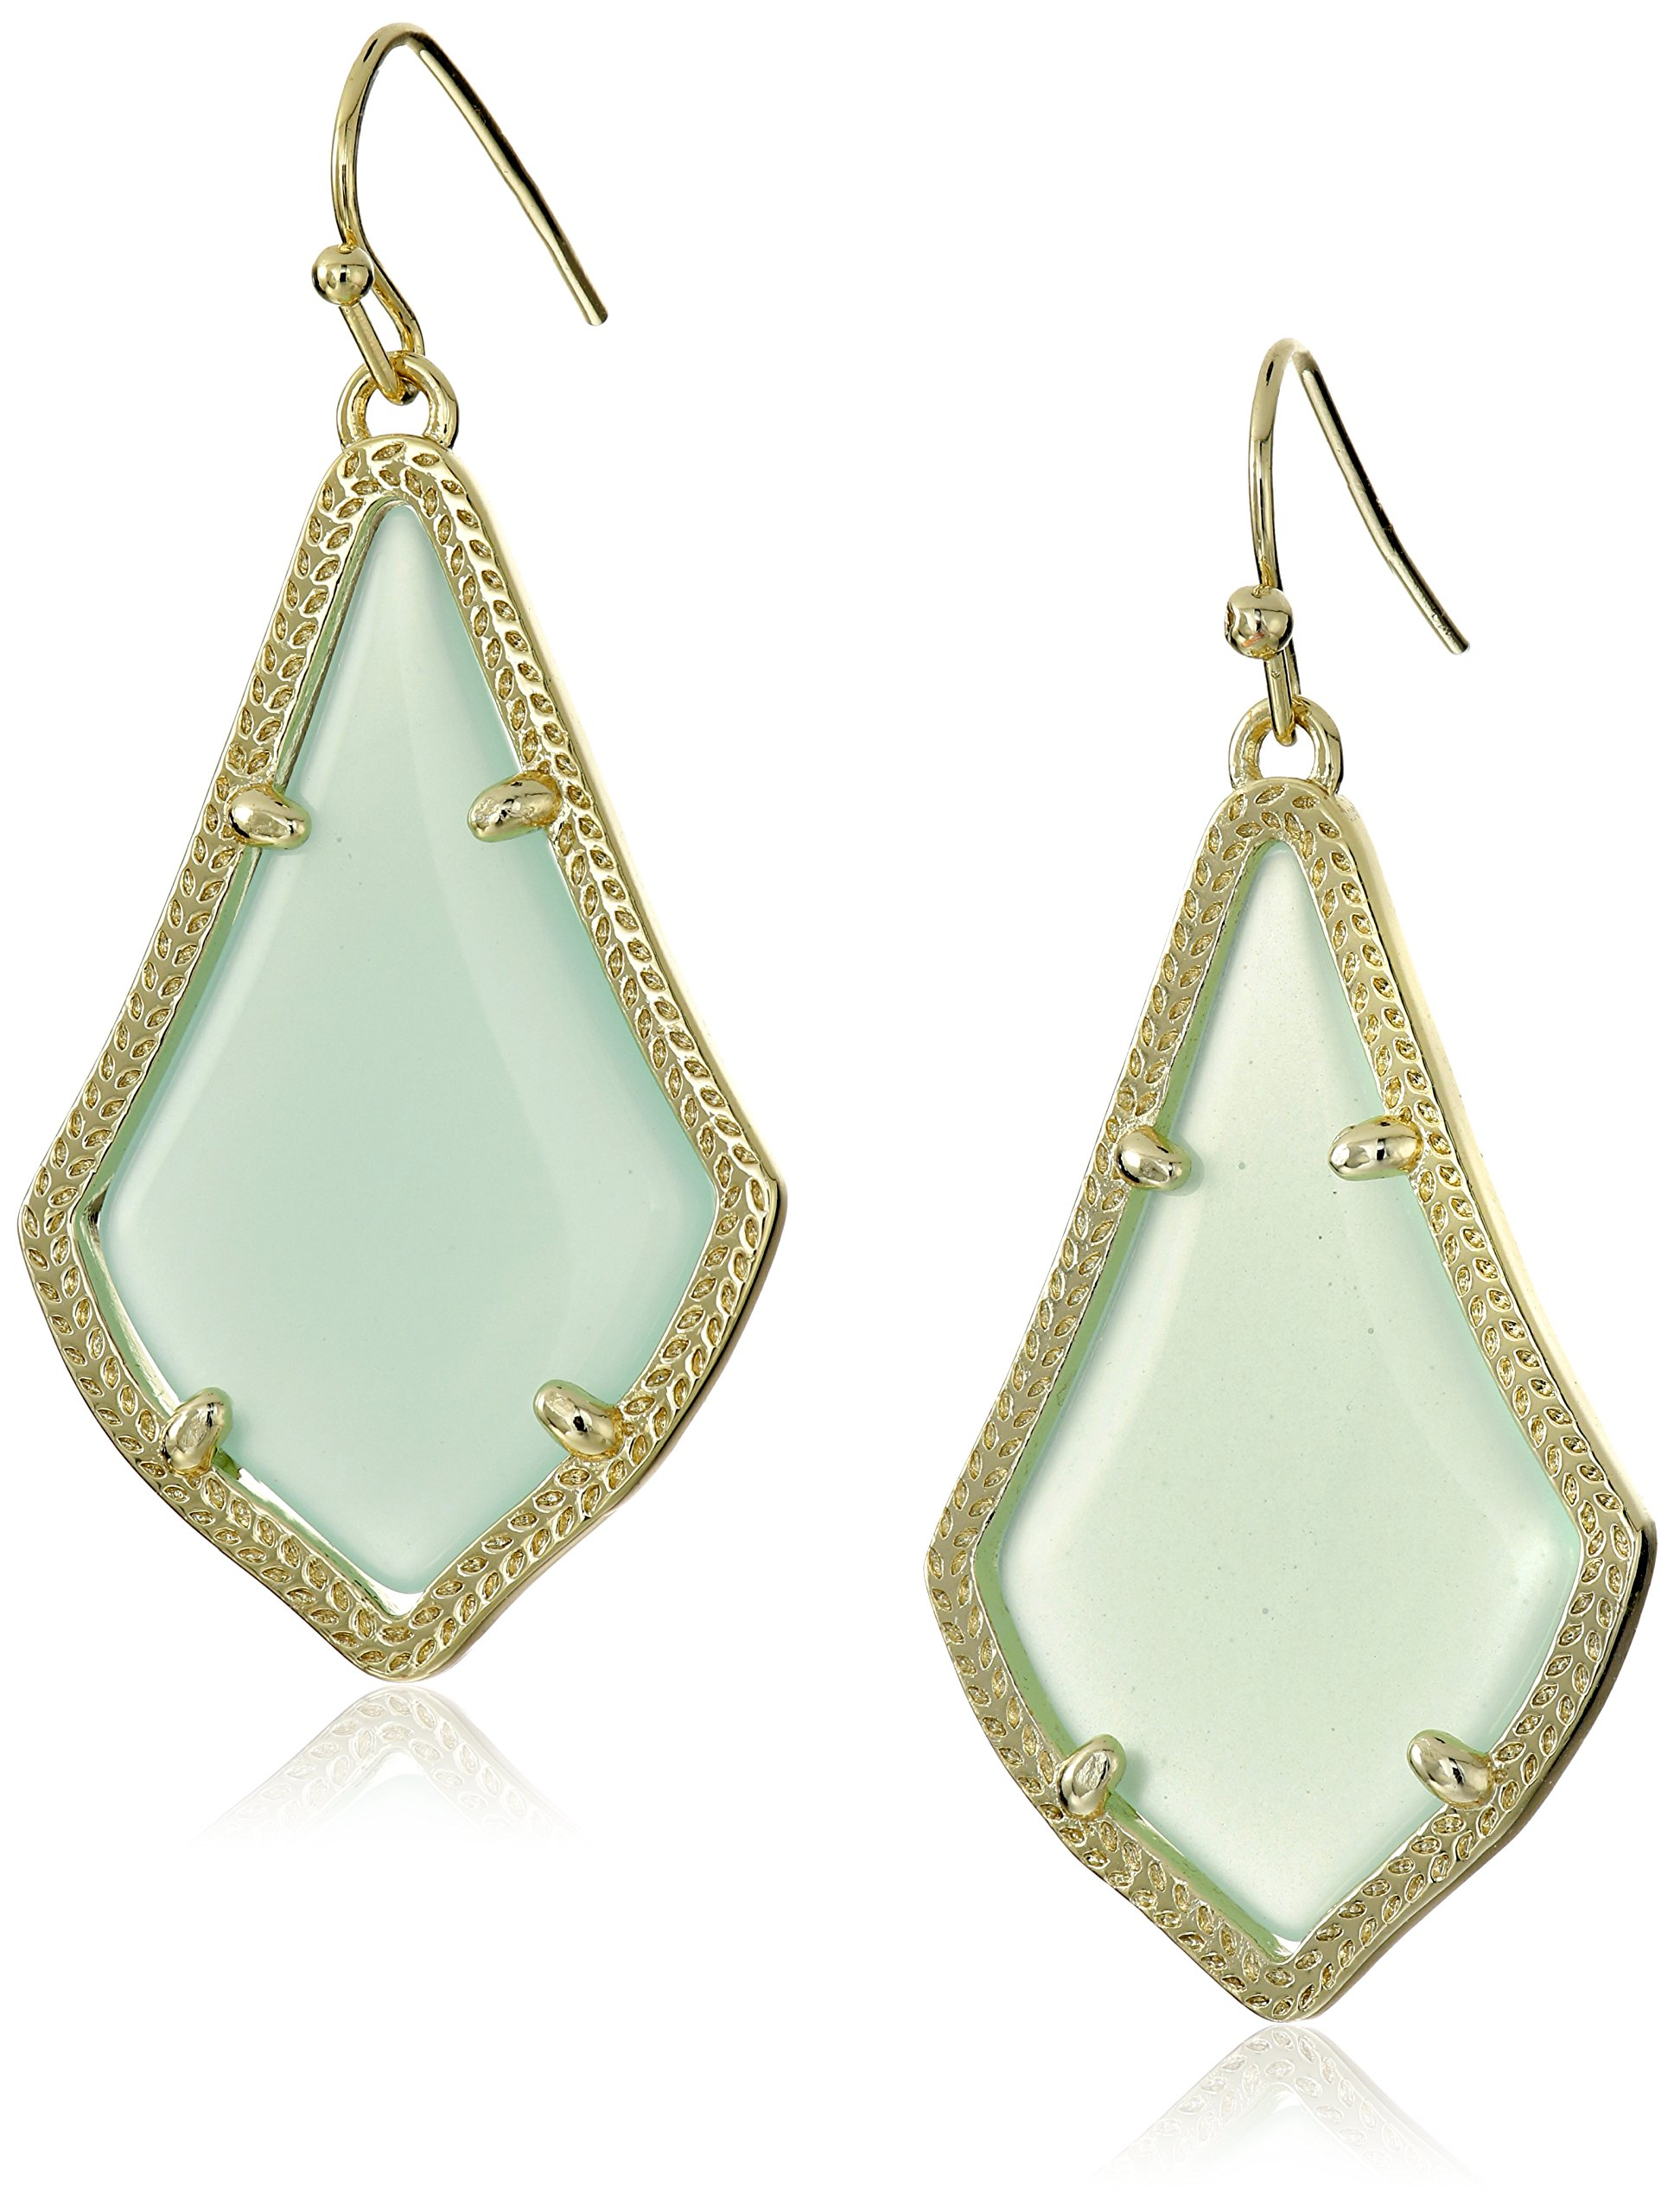 Kendra Scott Signature Alex Drop Earrings in Gold Plated and Chalcedony Glass